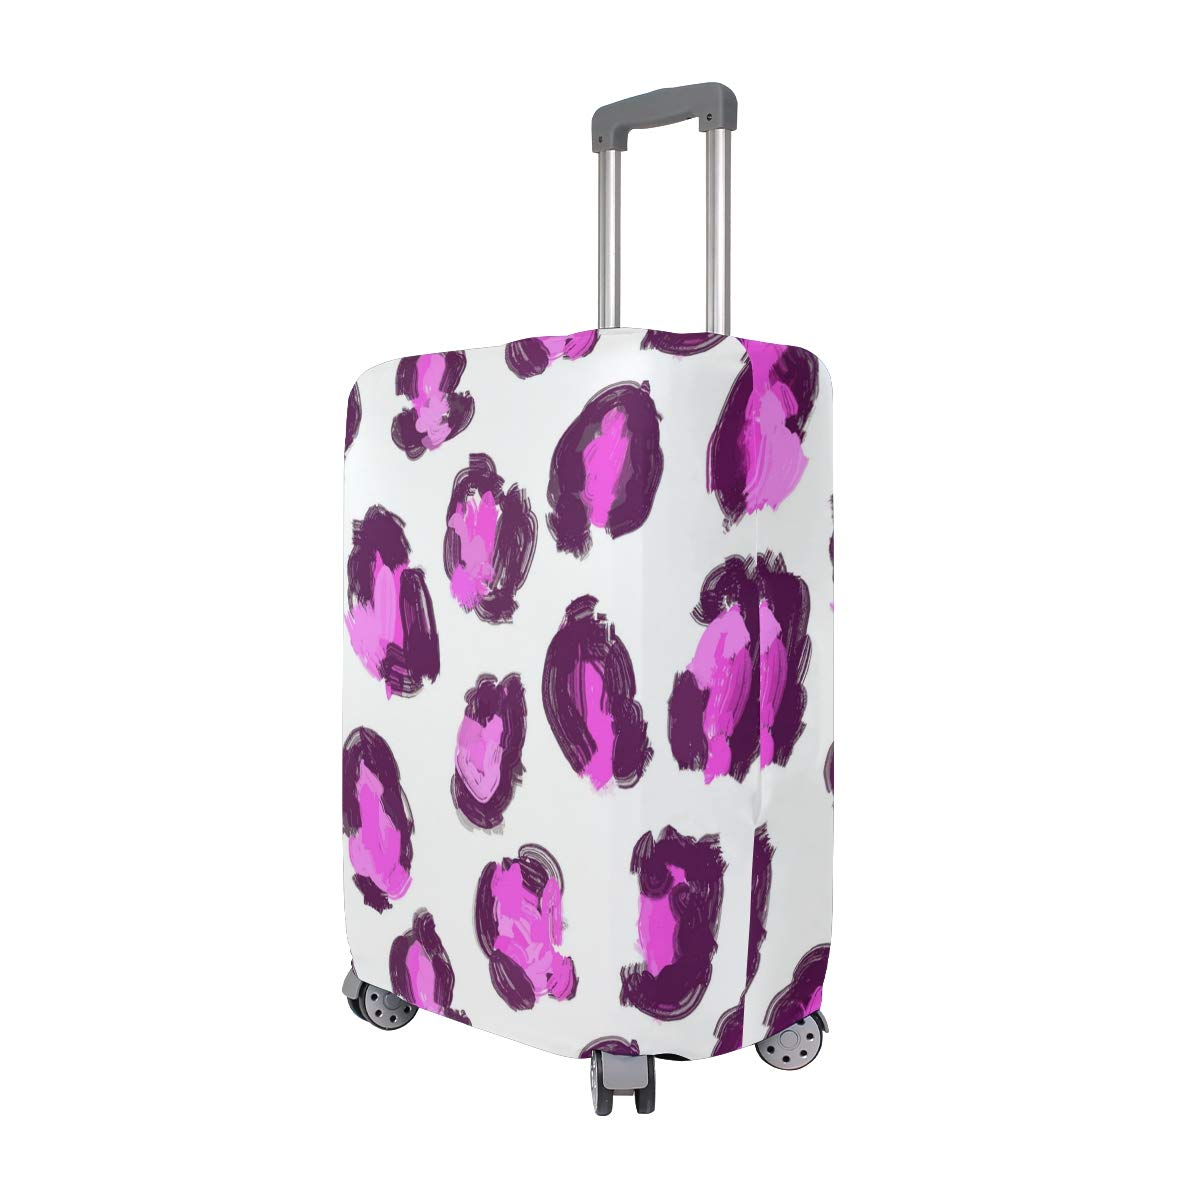 Baby Girl Leopard Print Pink Traveler Lightweight Rotating Luggage Protector Case Can Carry With You Can Expand Travel Bag Trolley Rolling Luggage Protector Case